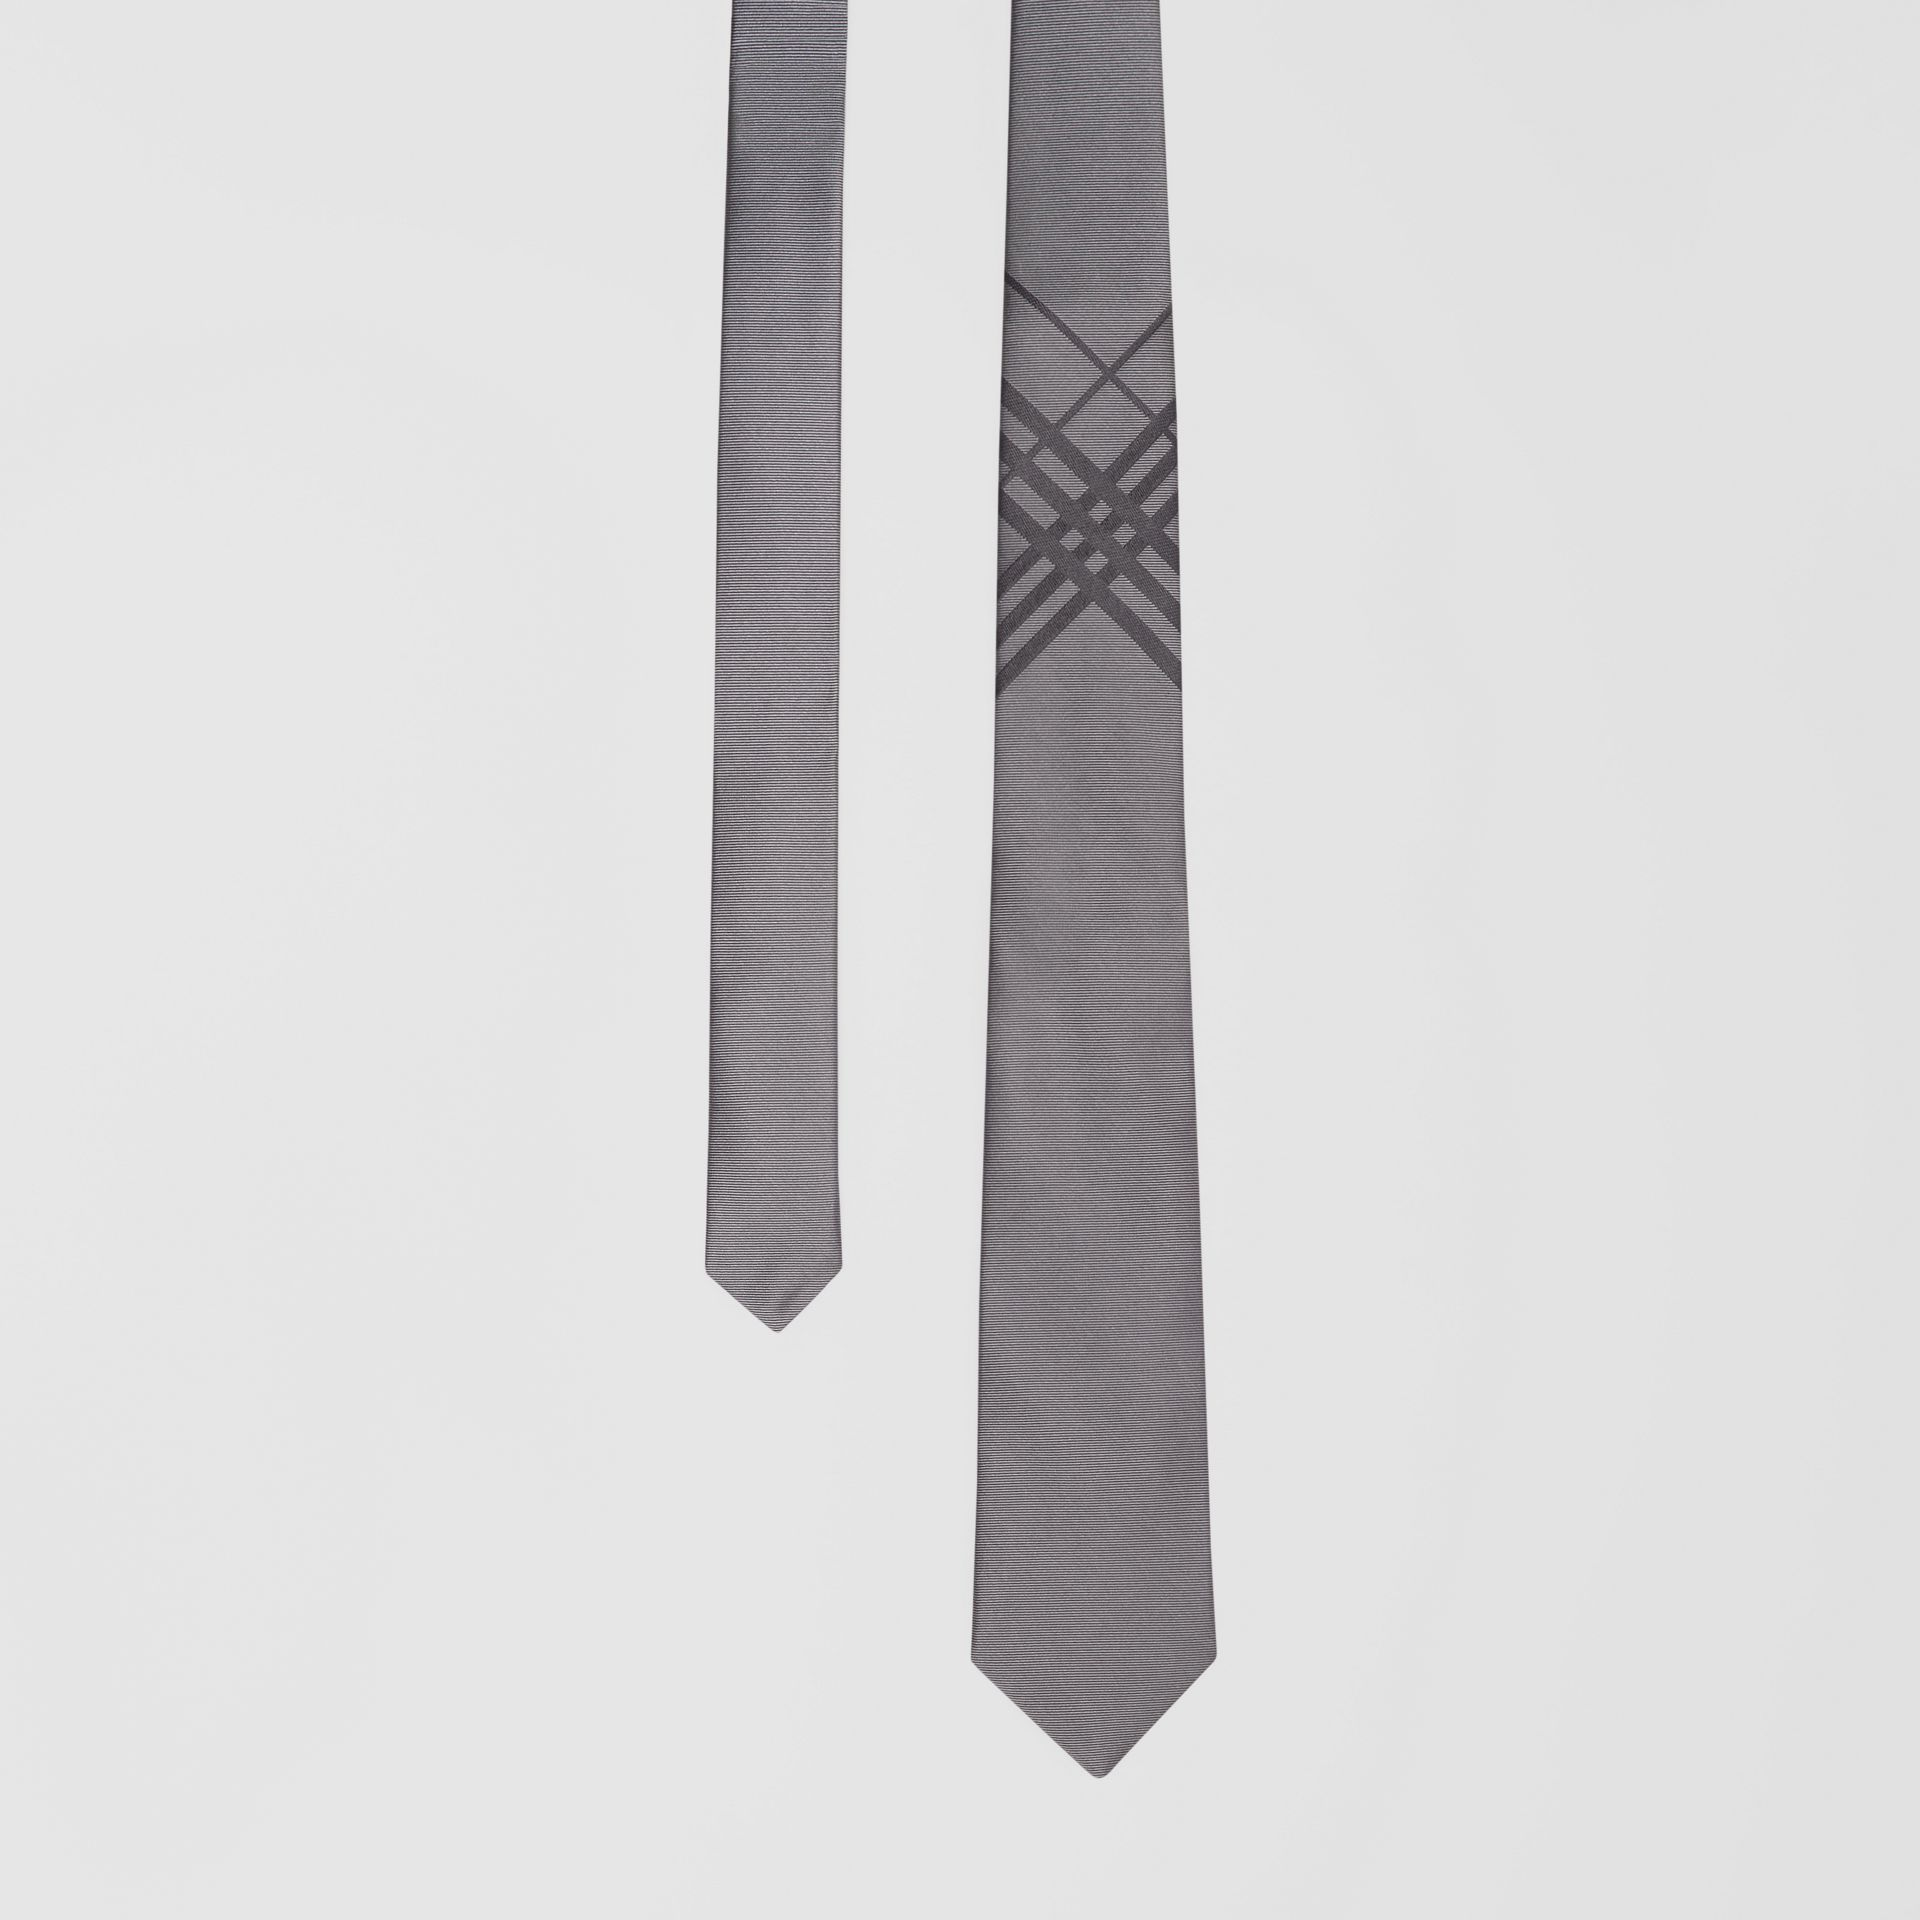 Classic Cut Check Silk Jacquard Tie in Storm Grey - Men | Burberry Hong Kong S.A.R - gallery image 0